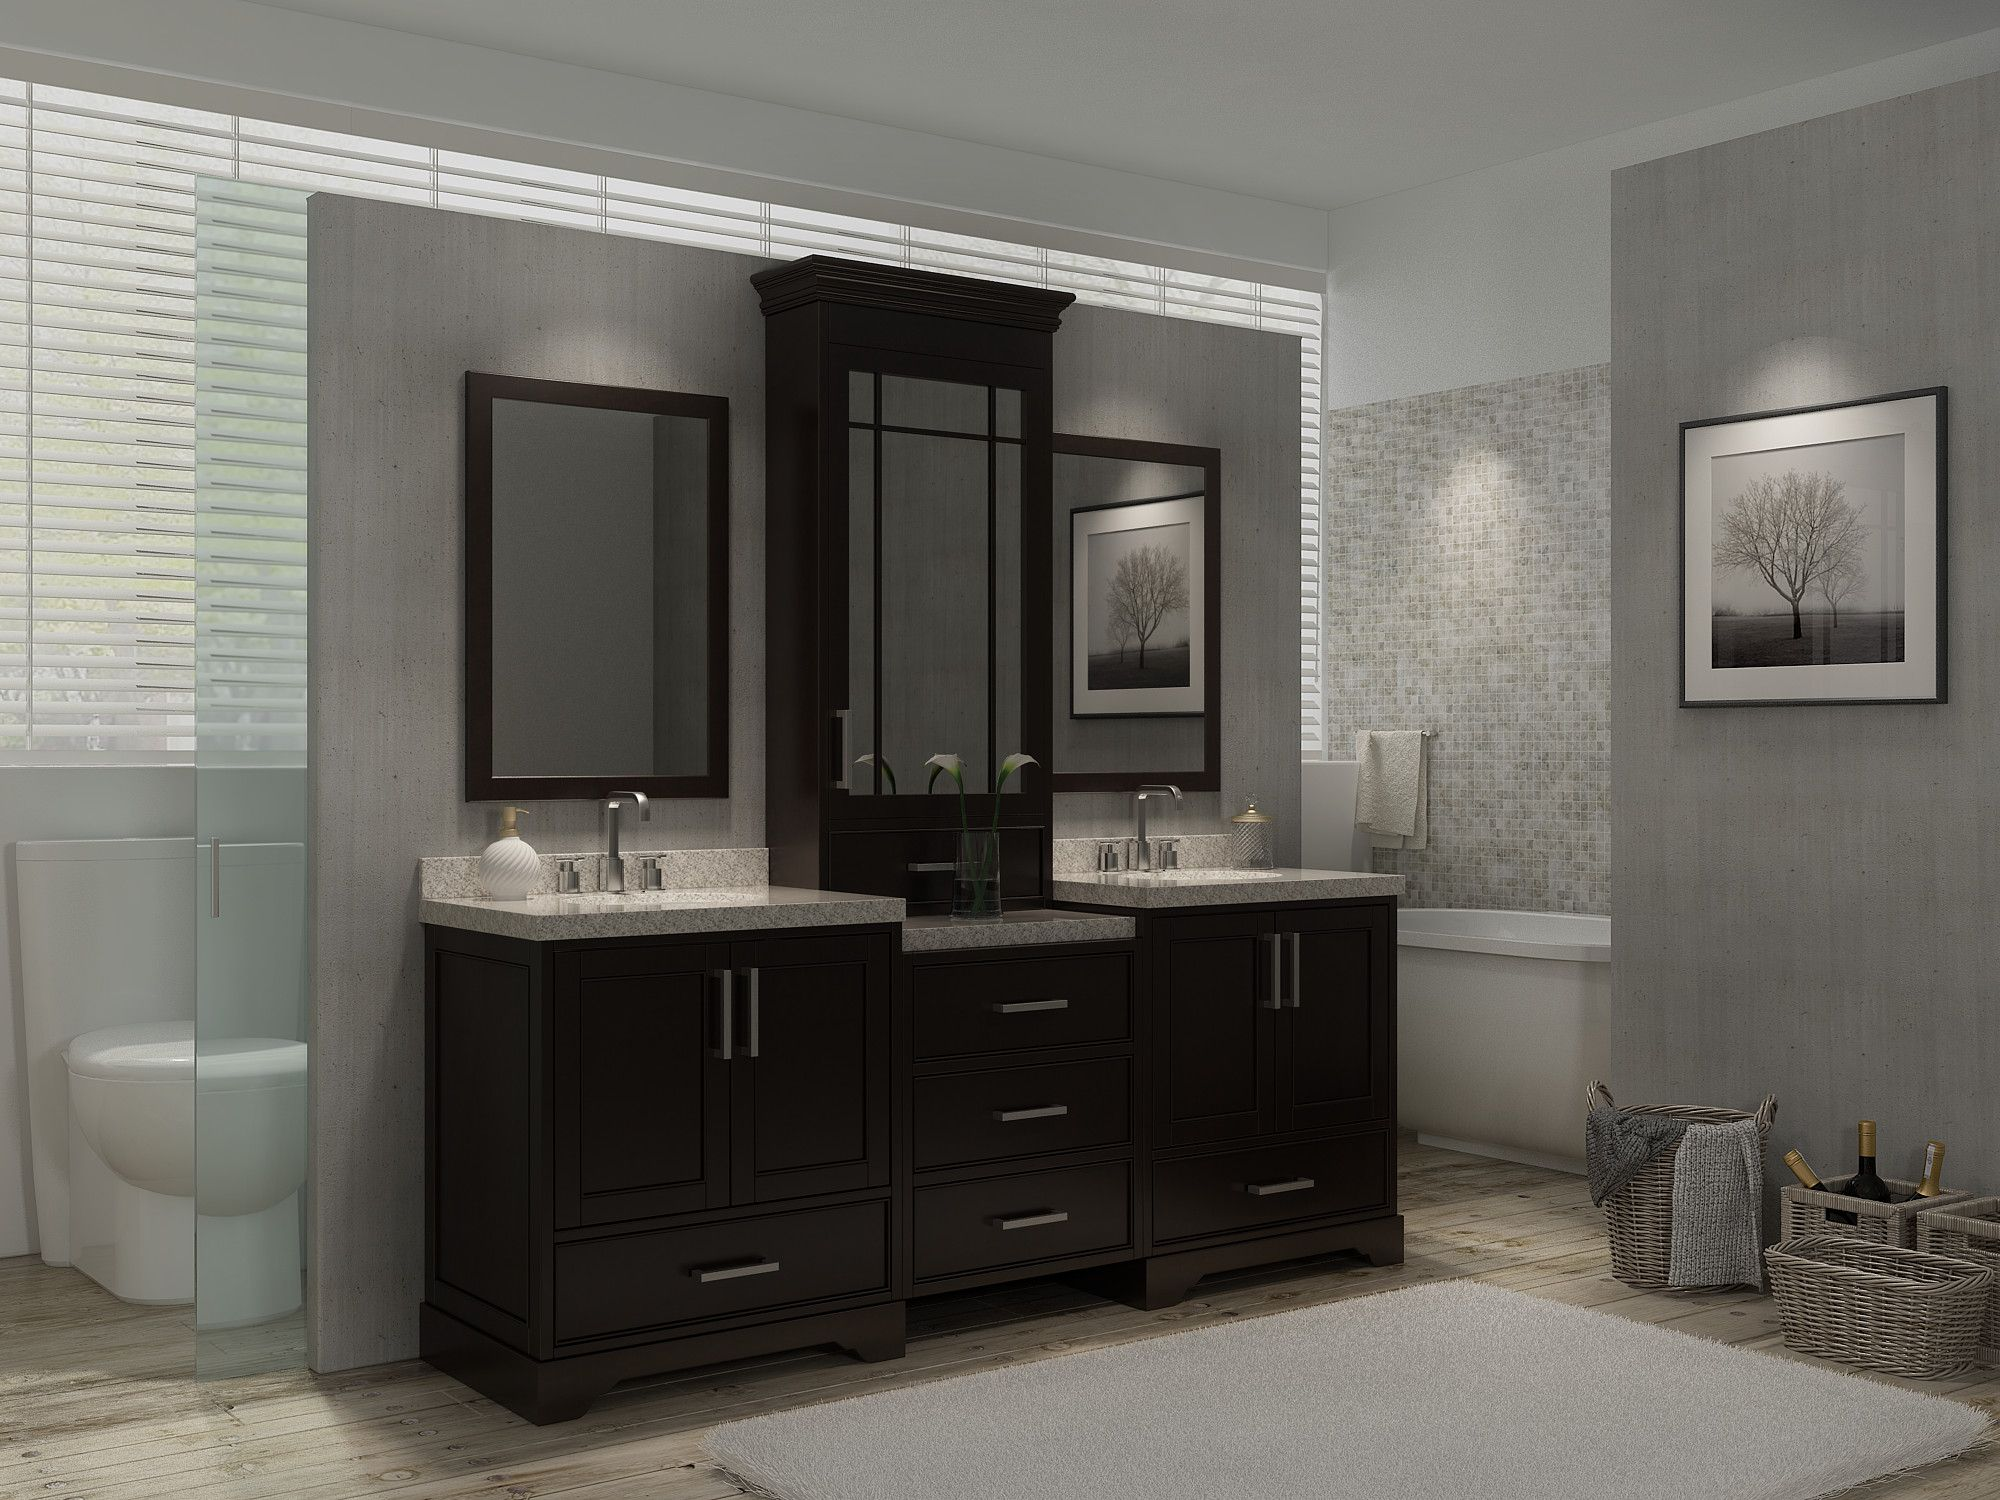 Modern Bathroom Renovations You Should Consider Architecture - Bathroom vanity hutch cabinets for bathroom decor ideas